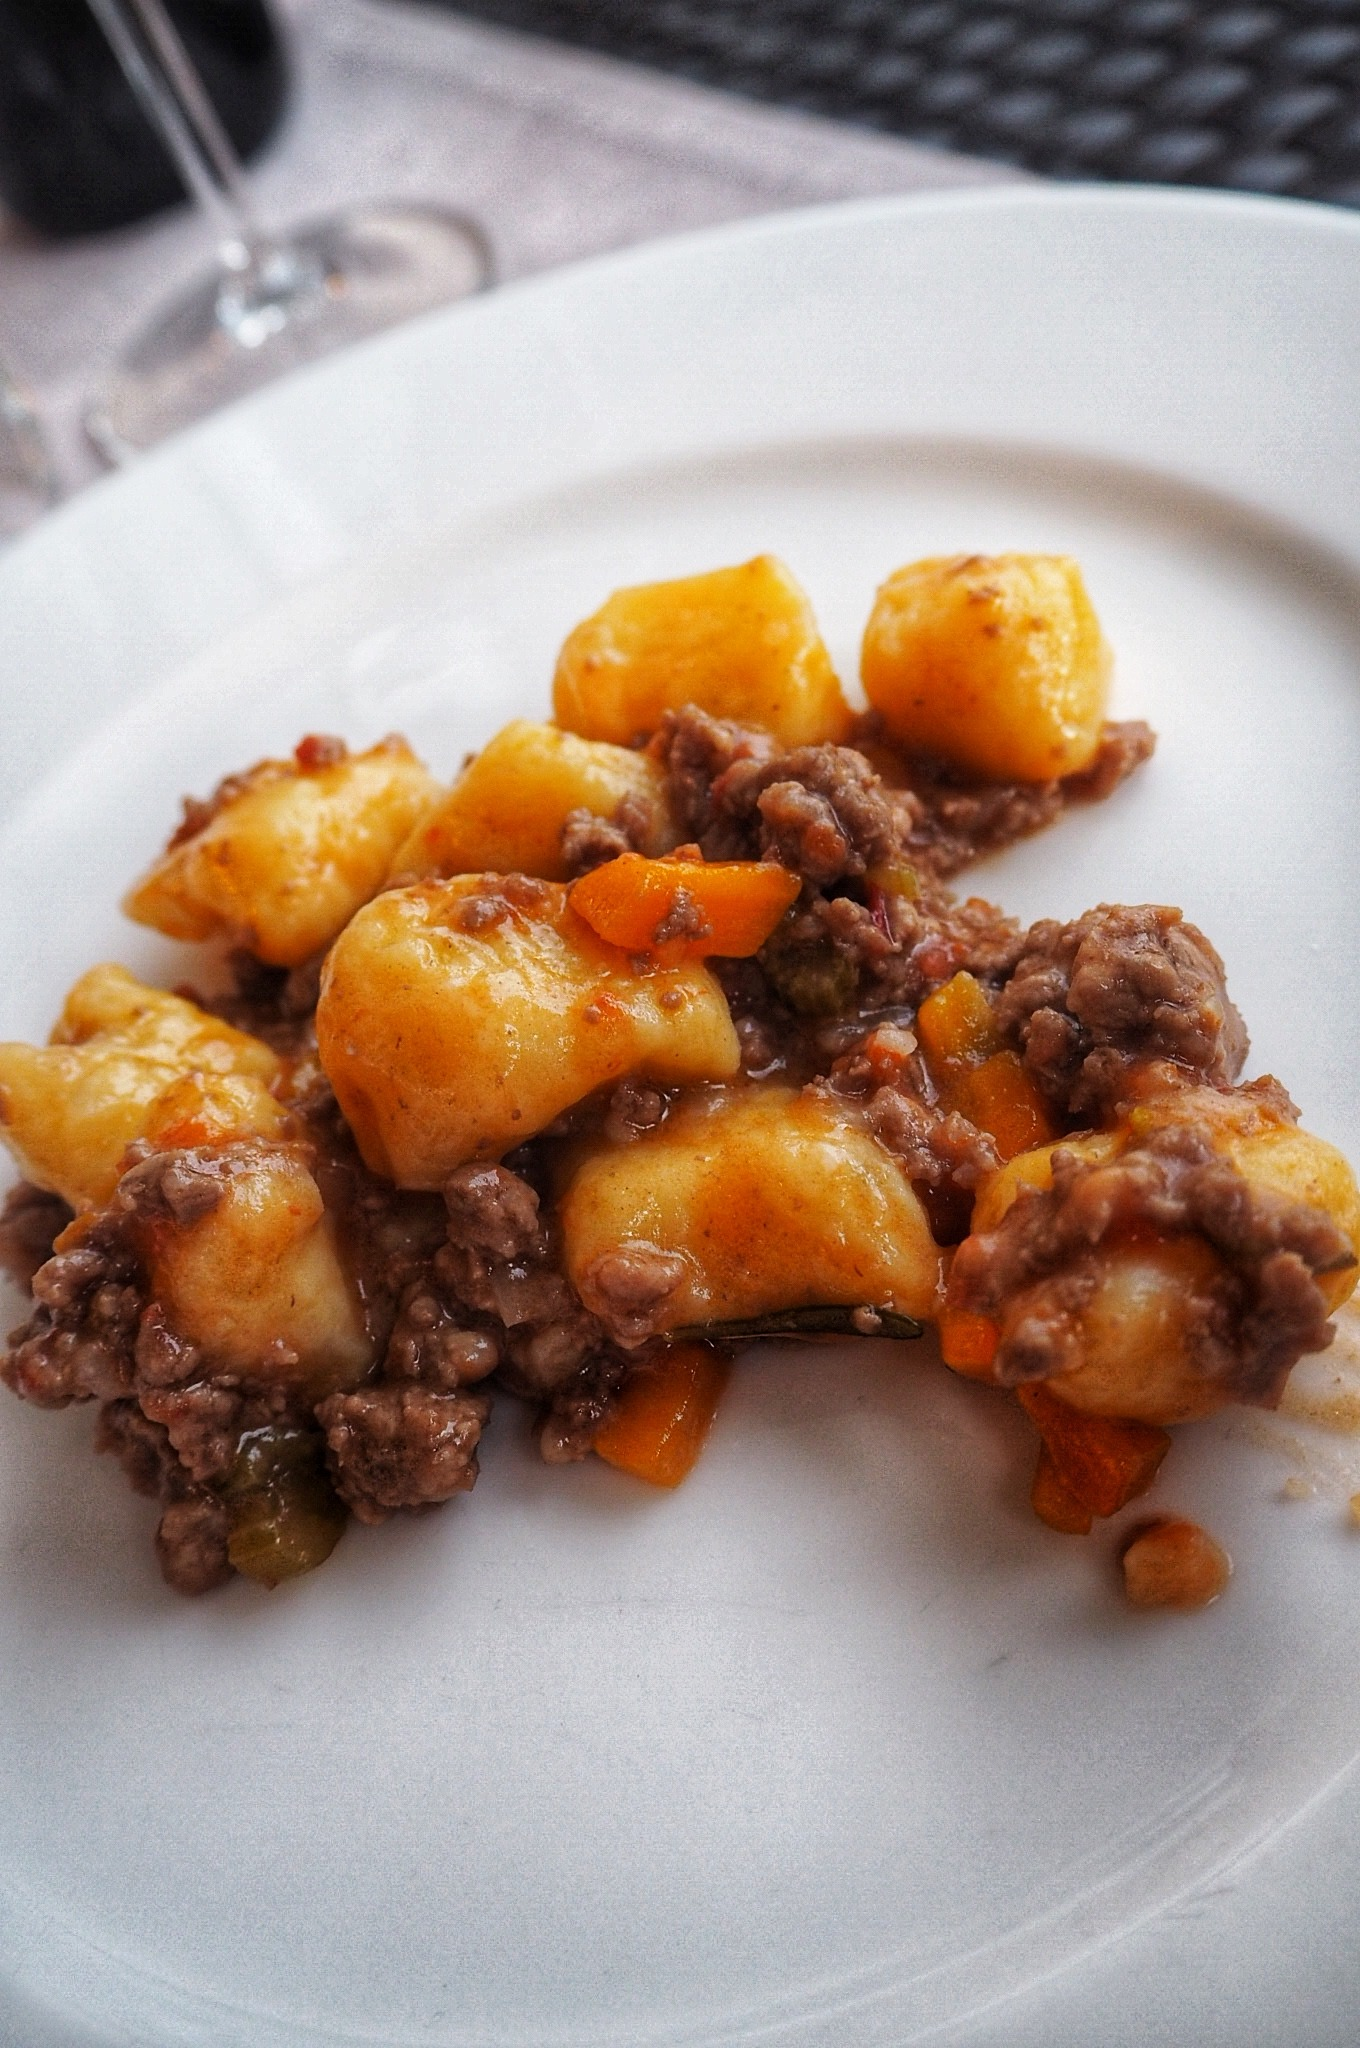 Authentic homemade gnocchi al rugu